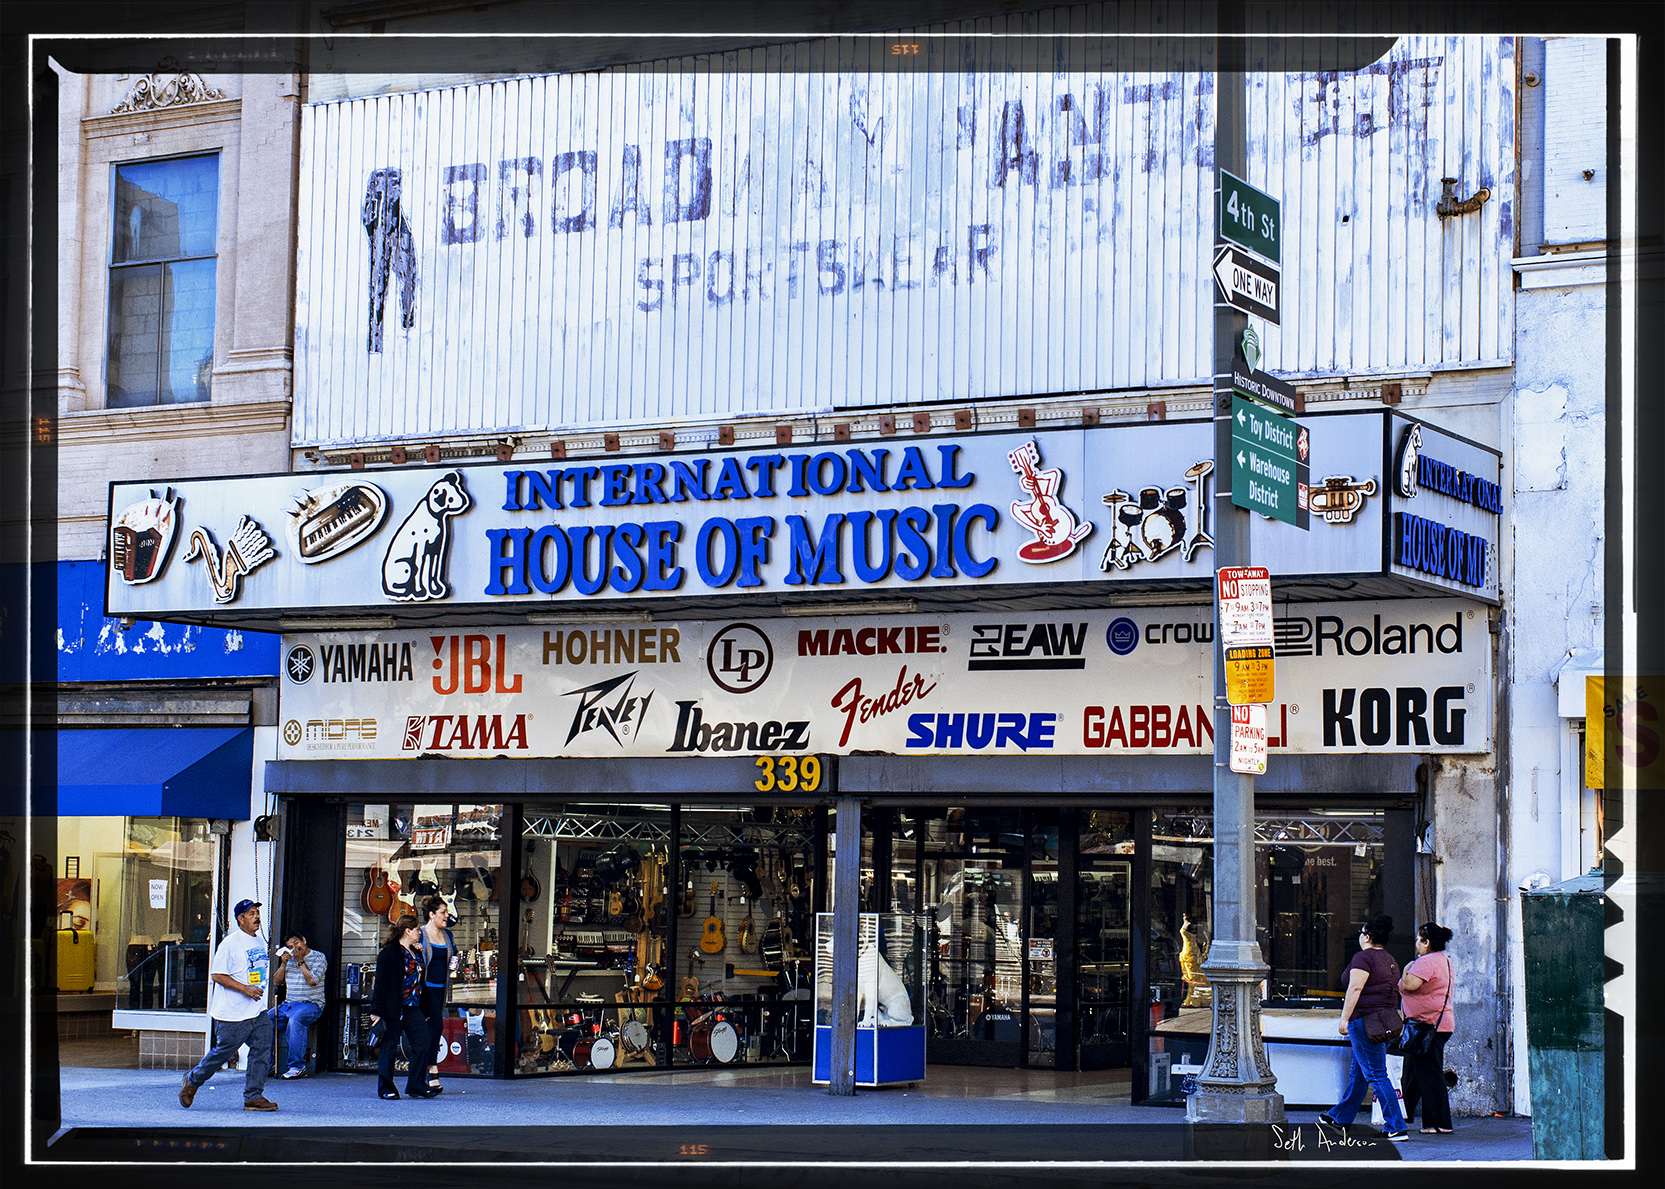 International House of Music , photo wikipedia